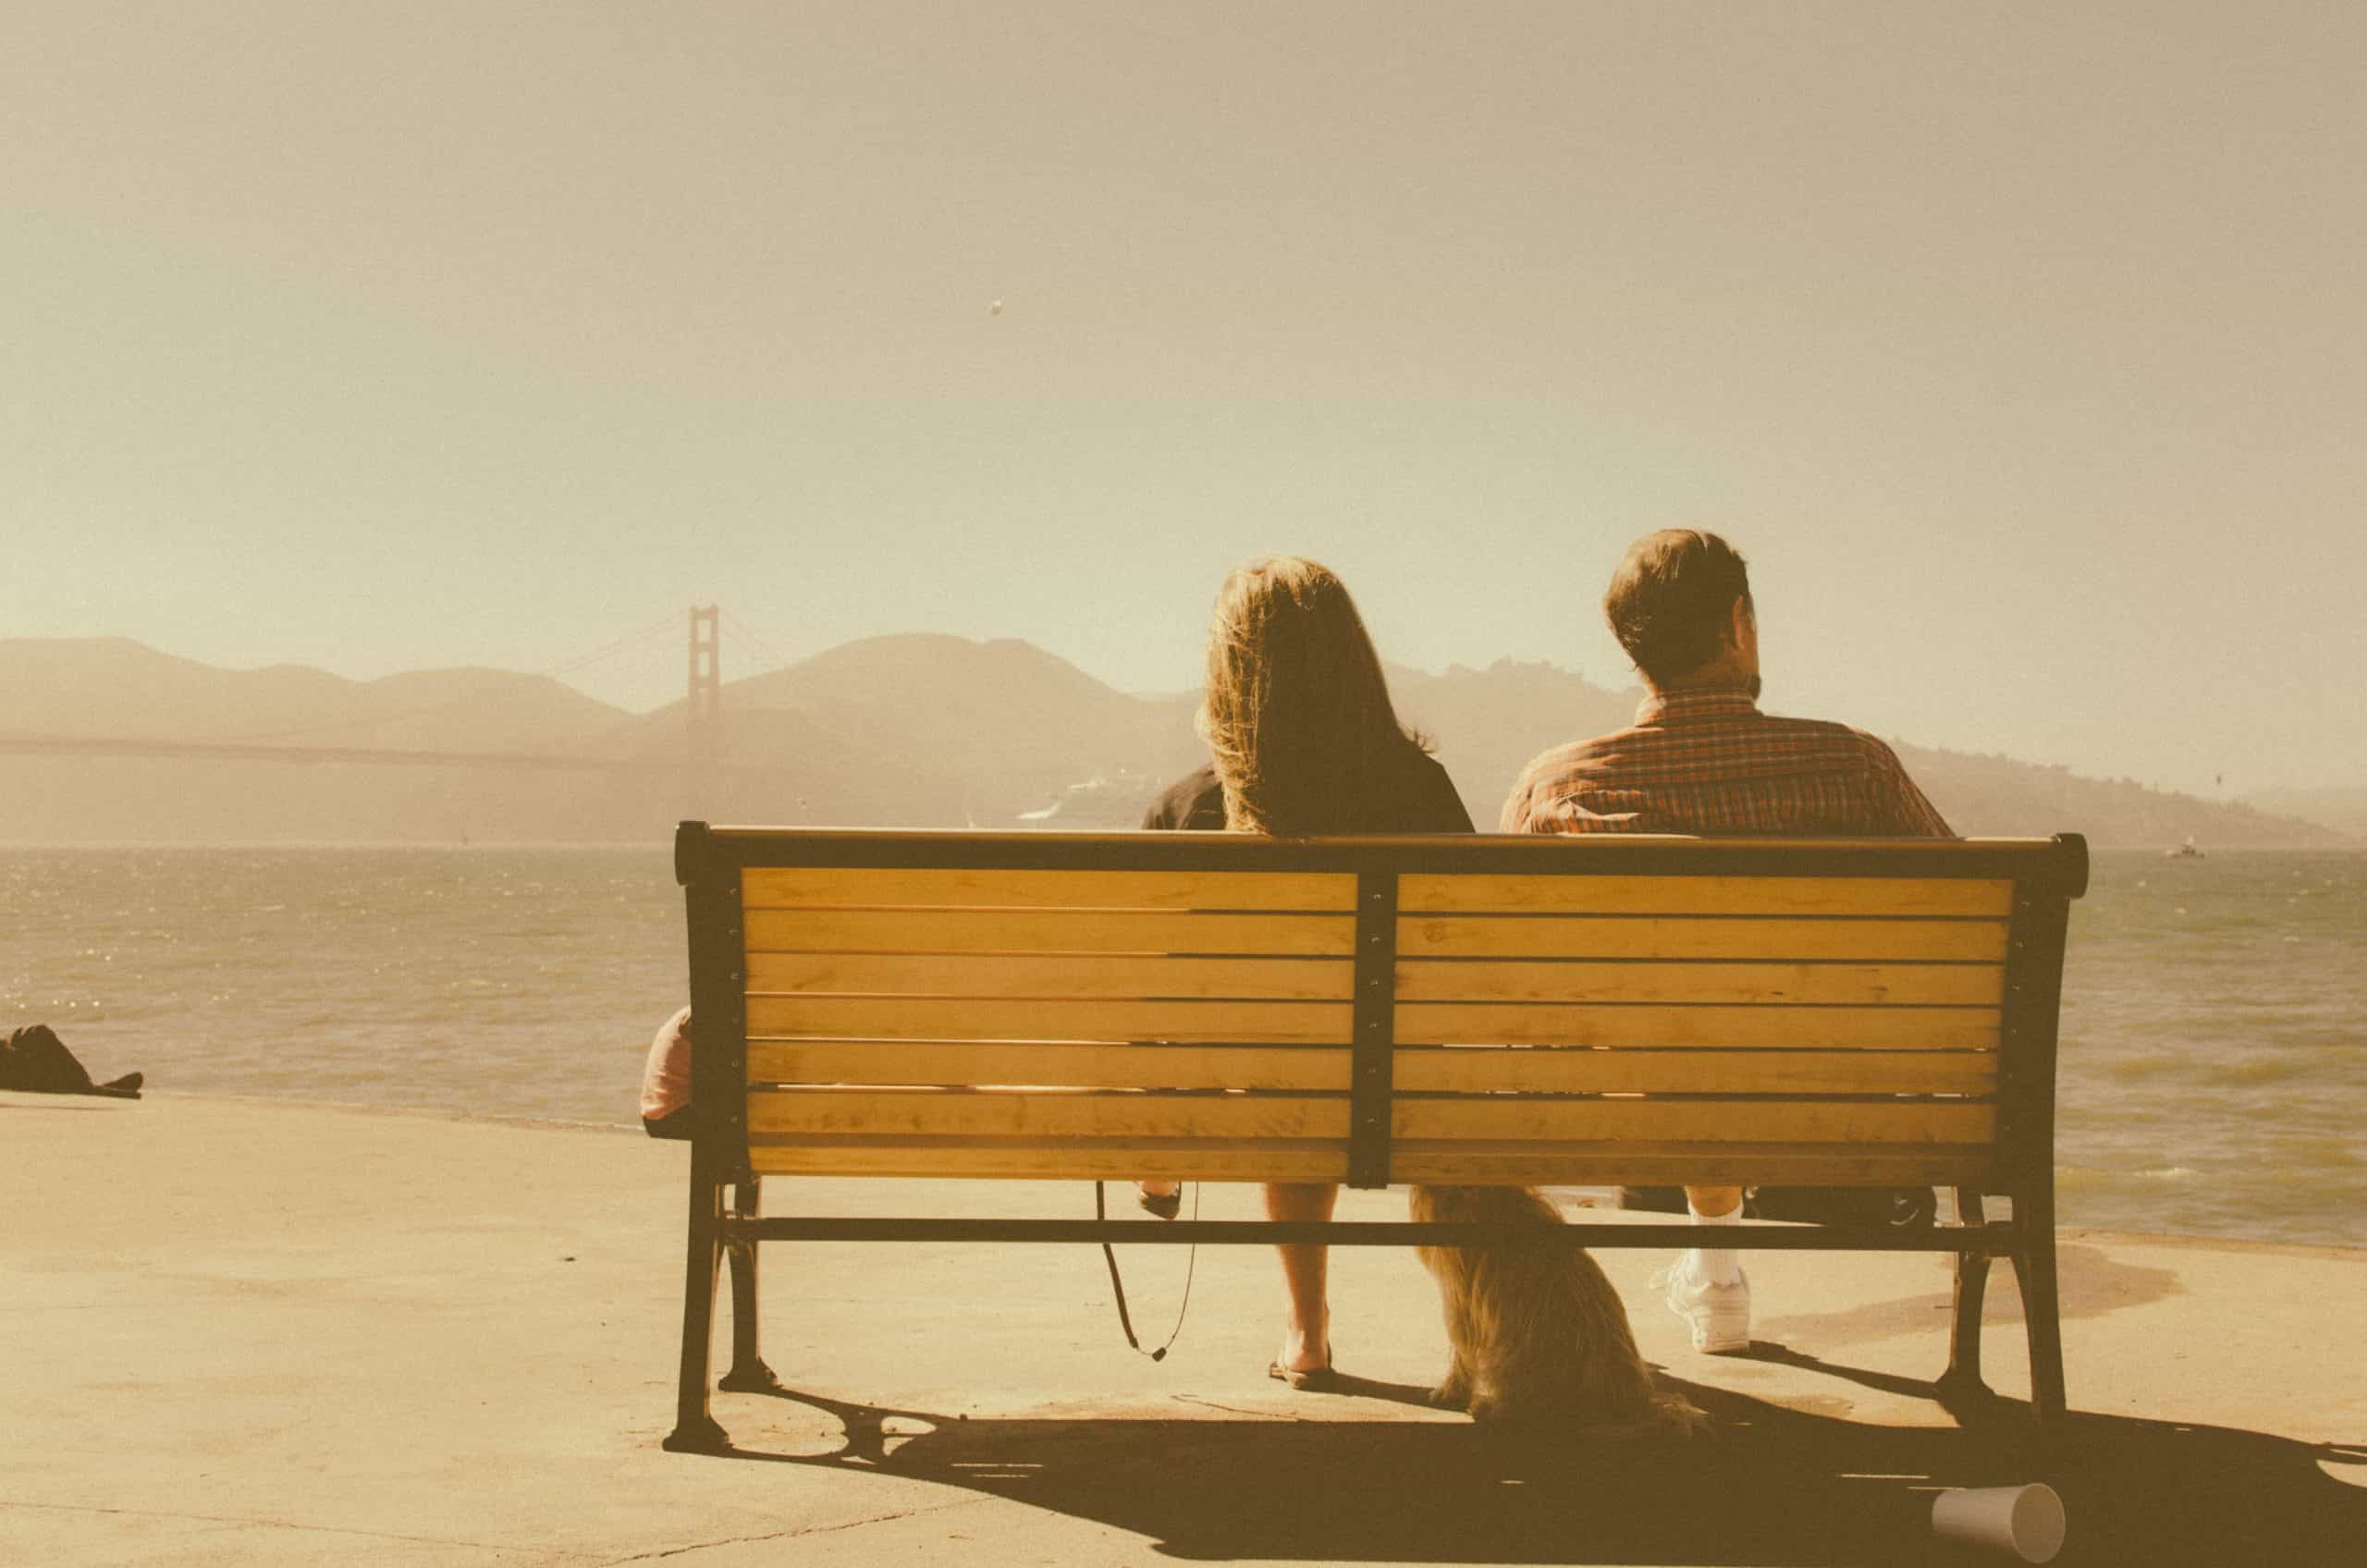 3 Reasons Individual Therapy Can Hurt Your Marriage, And 3 Ways To Avoid Harm